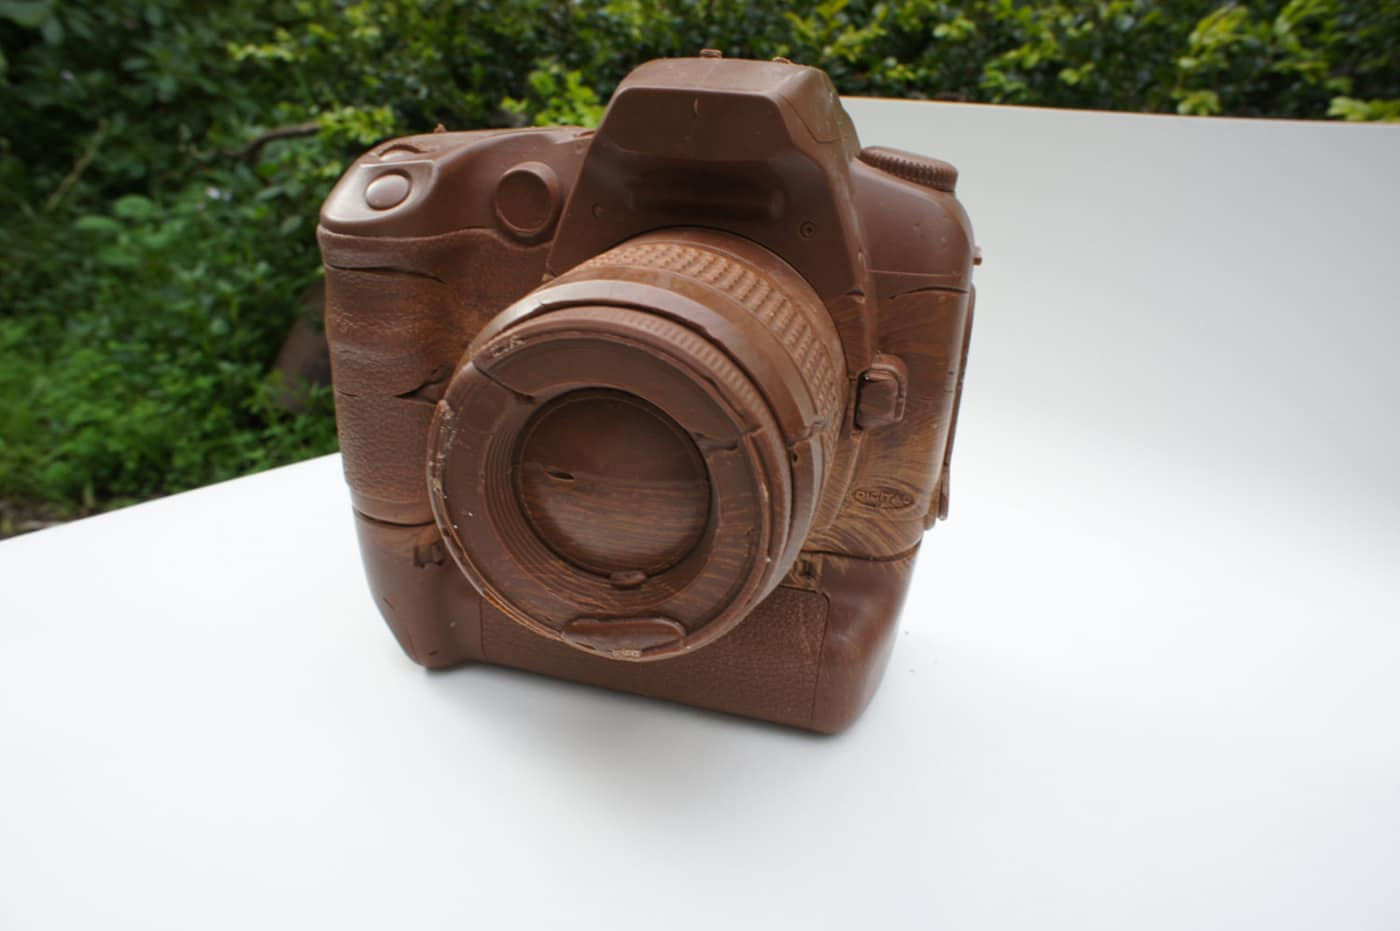 Canon D60 Camera (With Battery Grip) Created Out Of Solid Chocolate